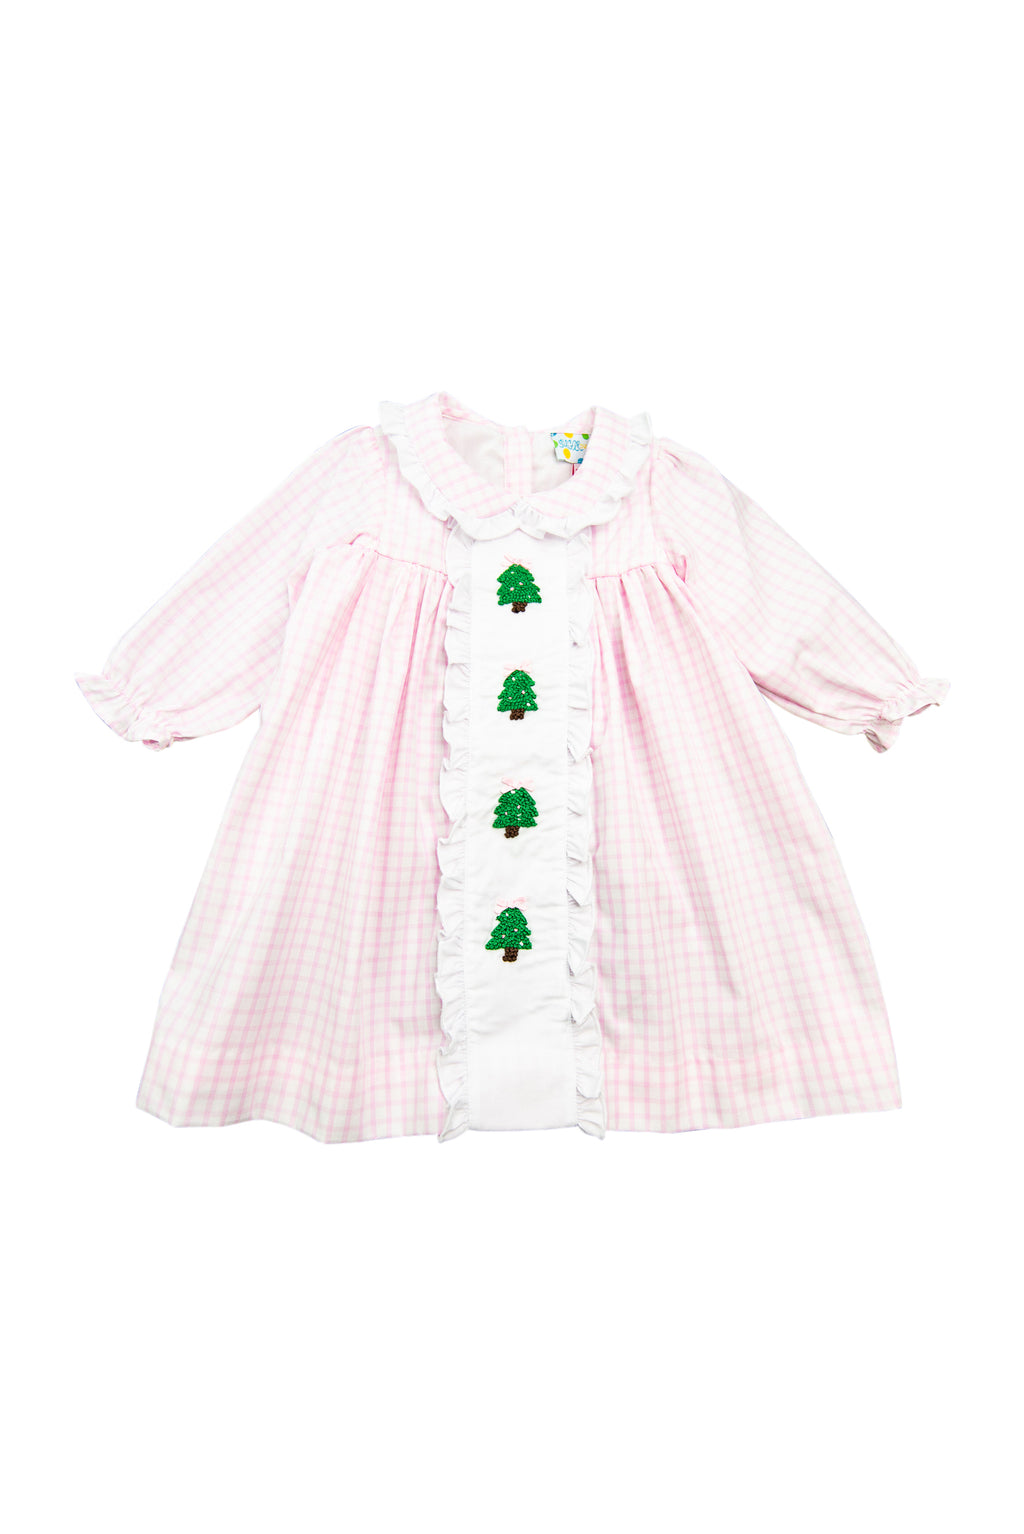 Girls French Knot Christmas Tree Dress